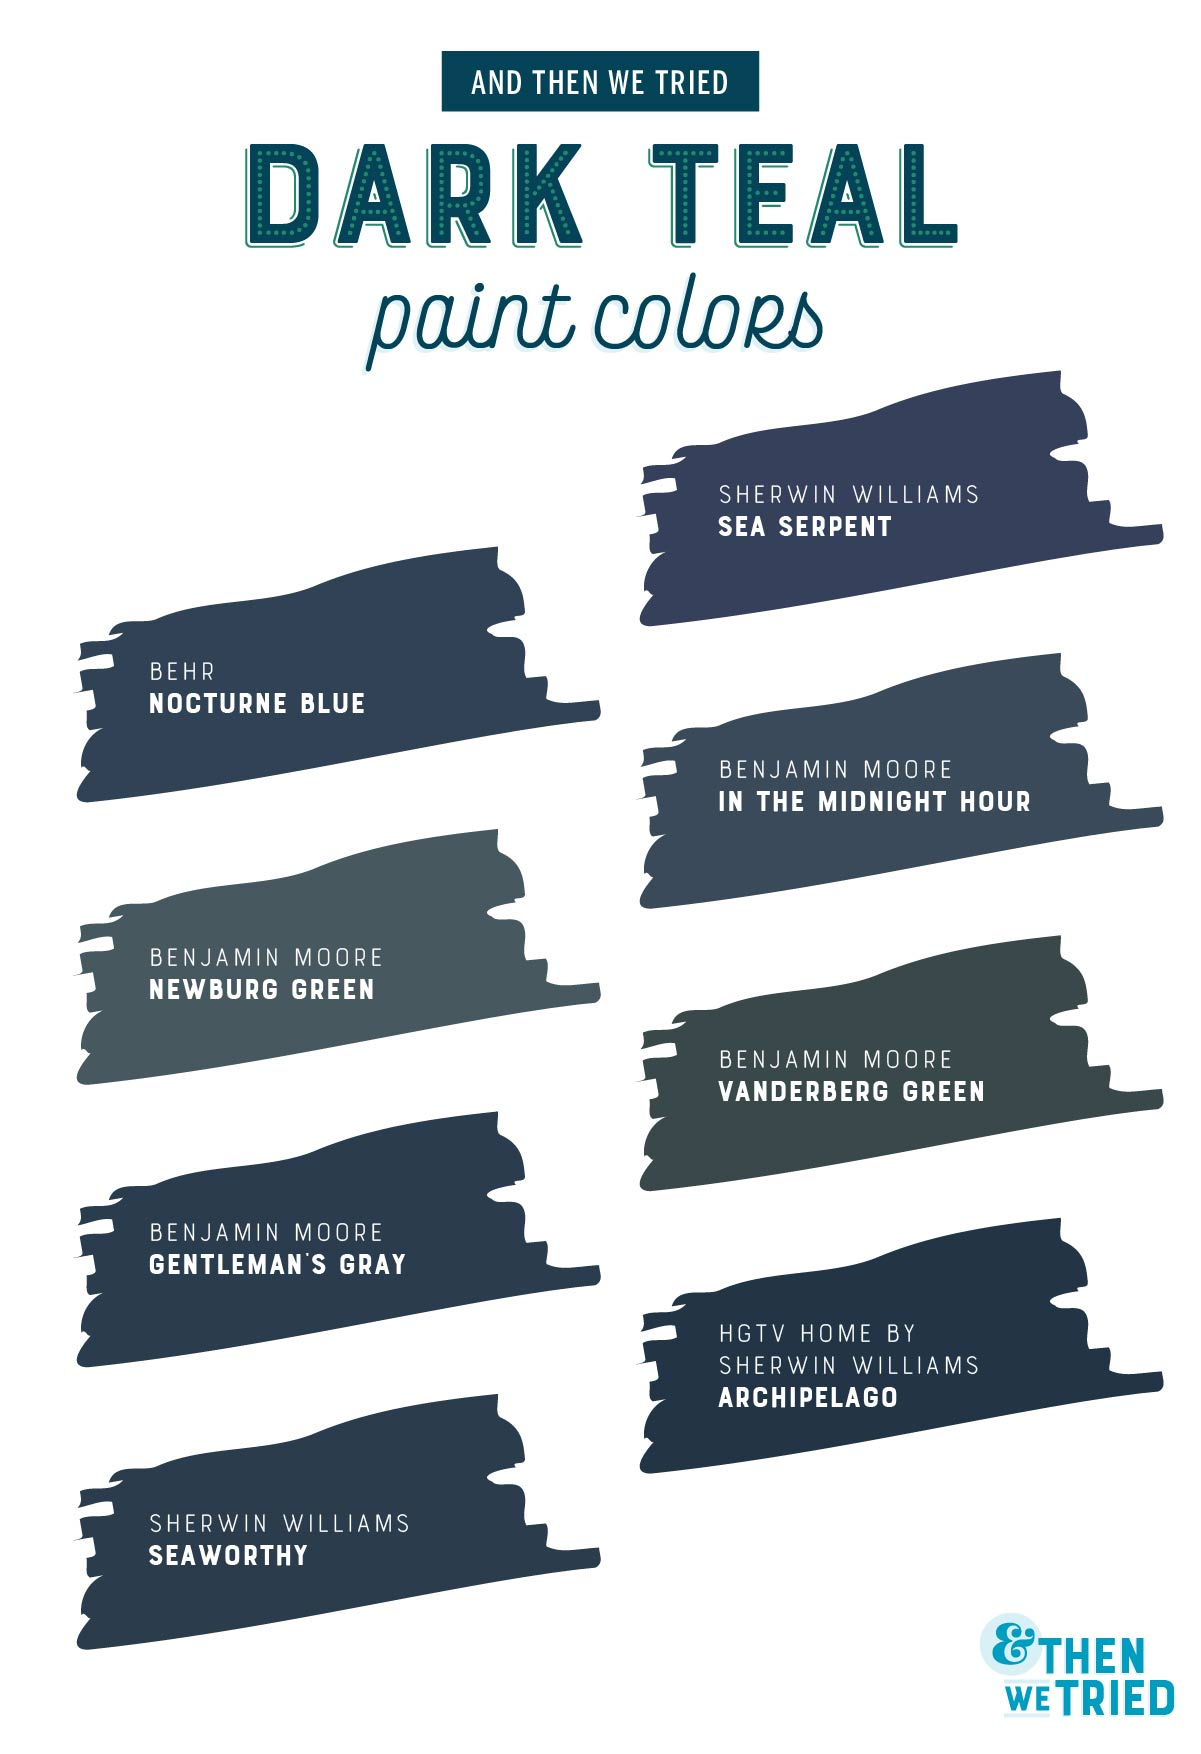 Choosing a dark teal house paint color for exterior siding